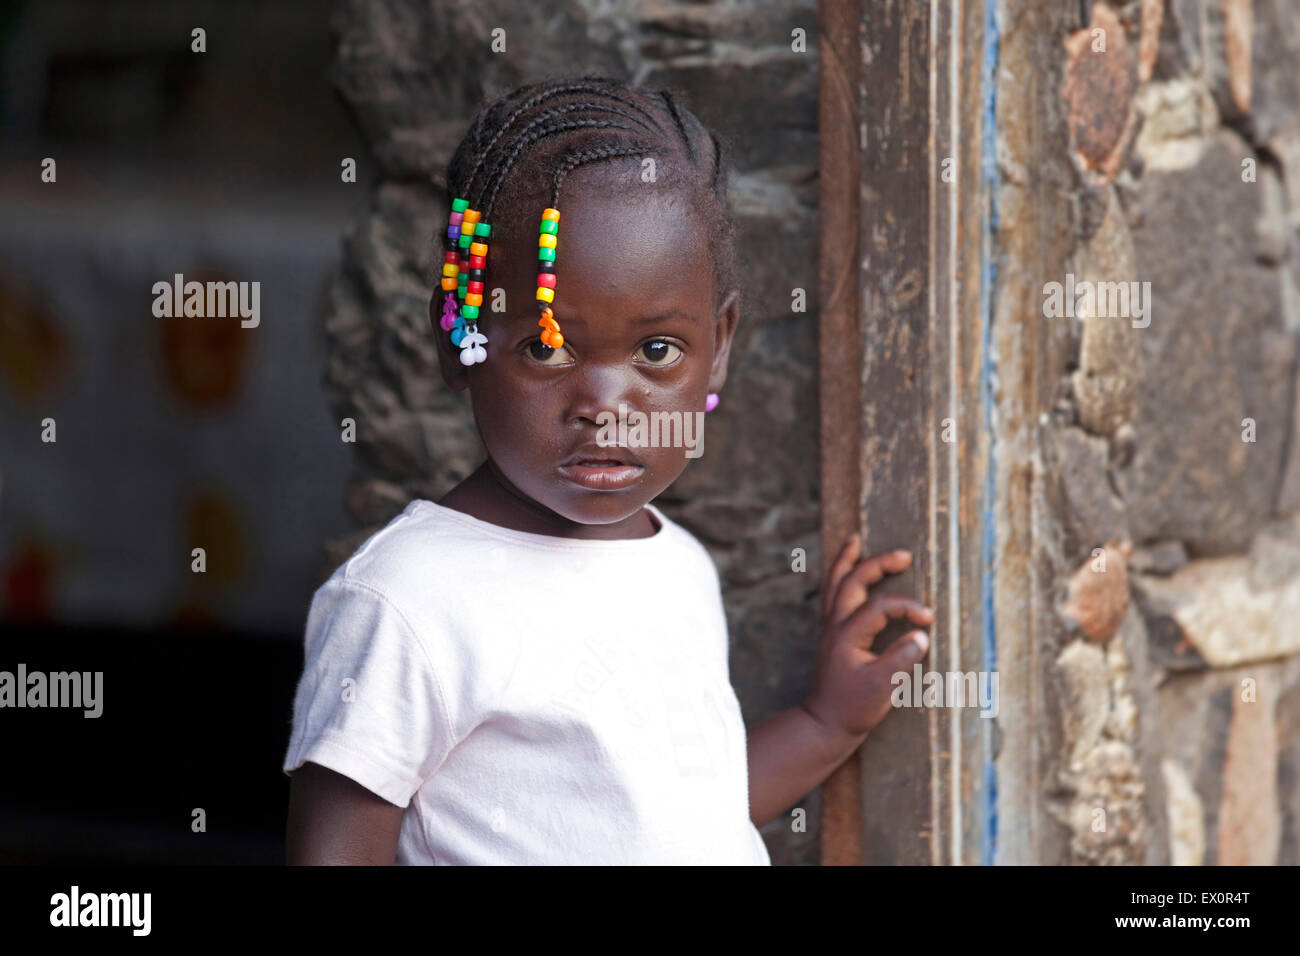 Creole girl with braided hair decorated with colourful beads in the village Rebelados on the island Santiago, Cape - Stock Image